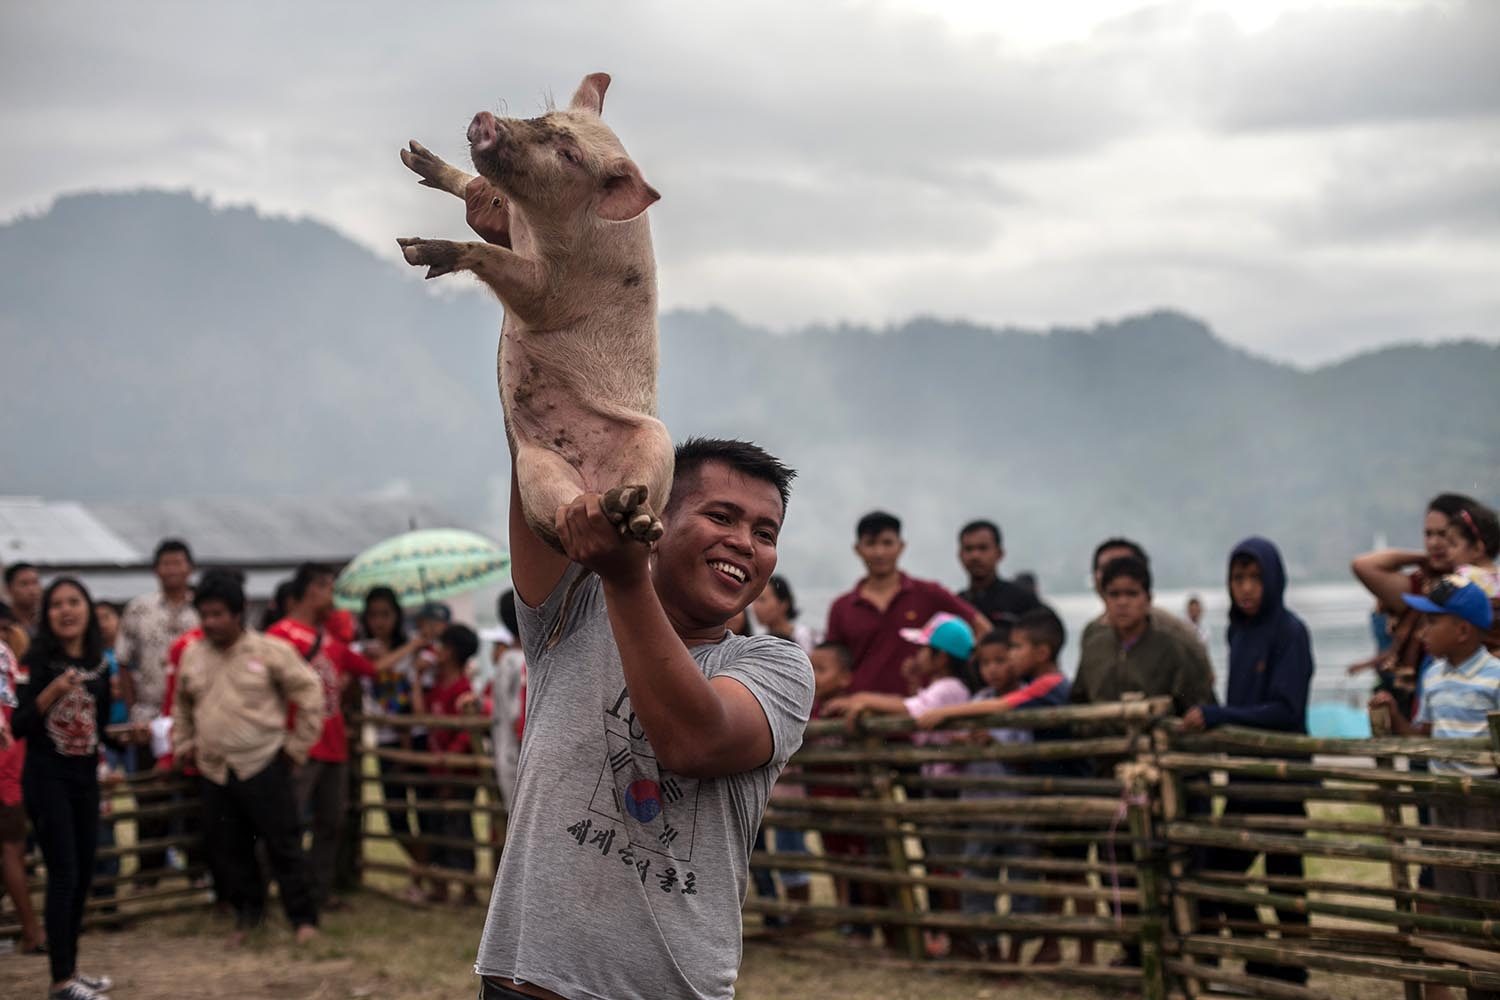 Winner's trophy: Firwan Aritonang is victorious as a pig catcher. JP/Andri Ginting